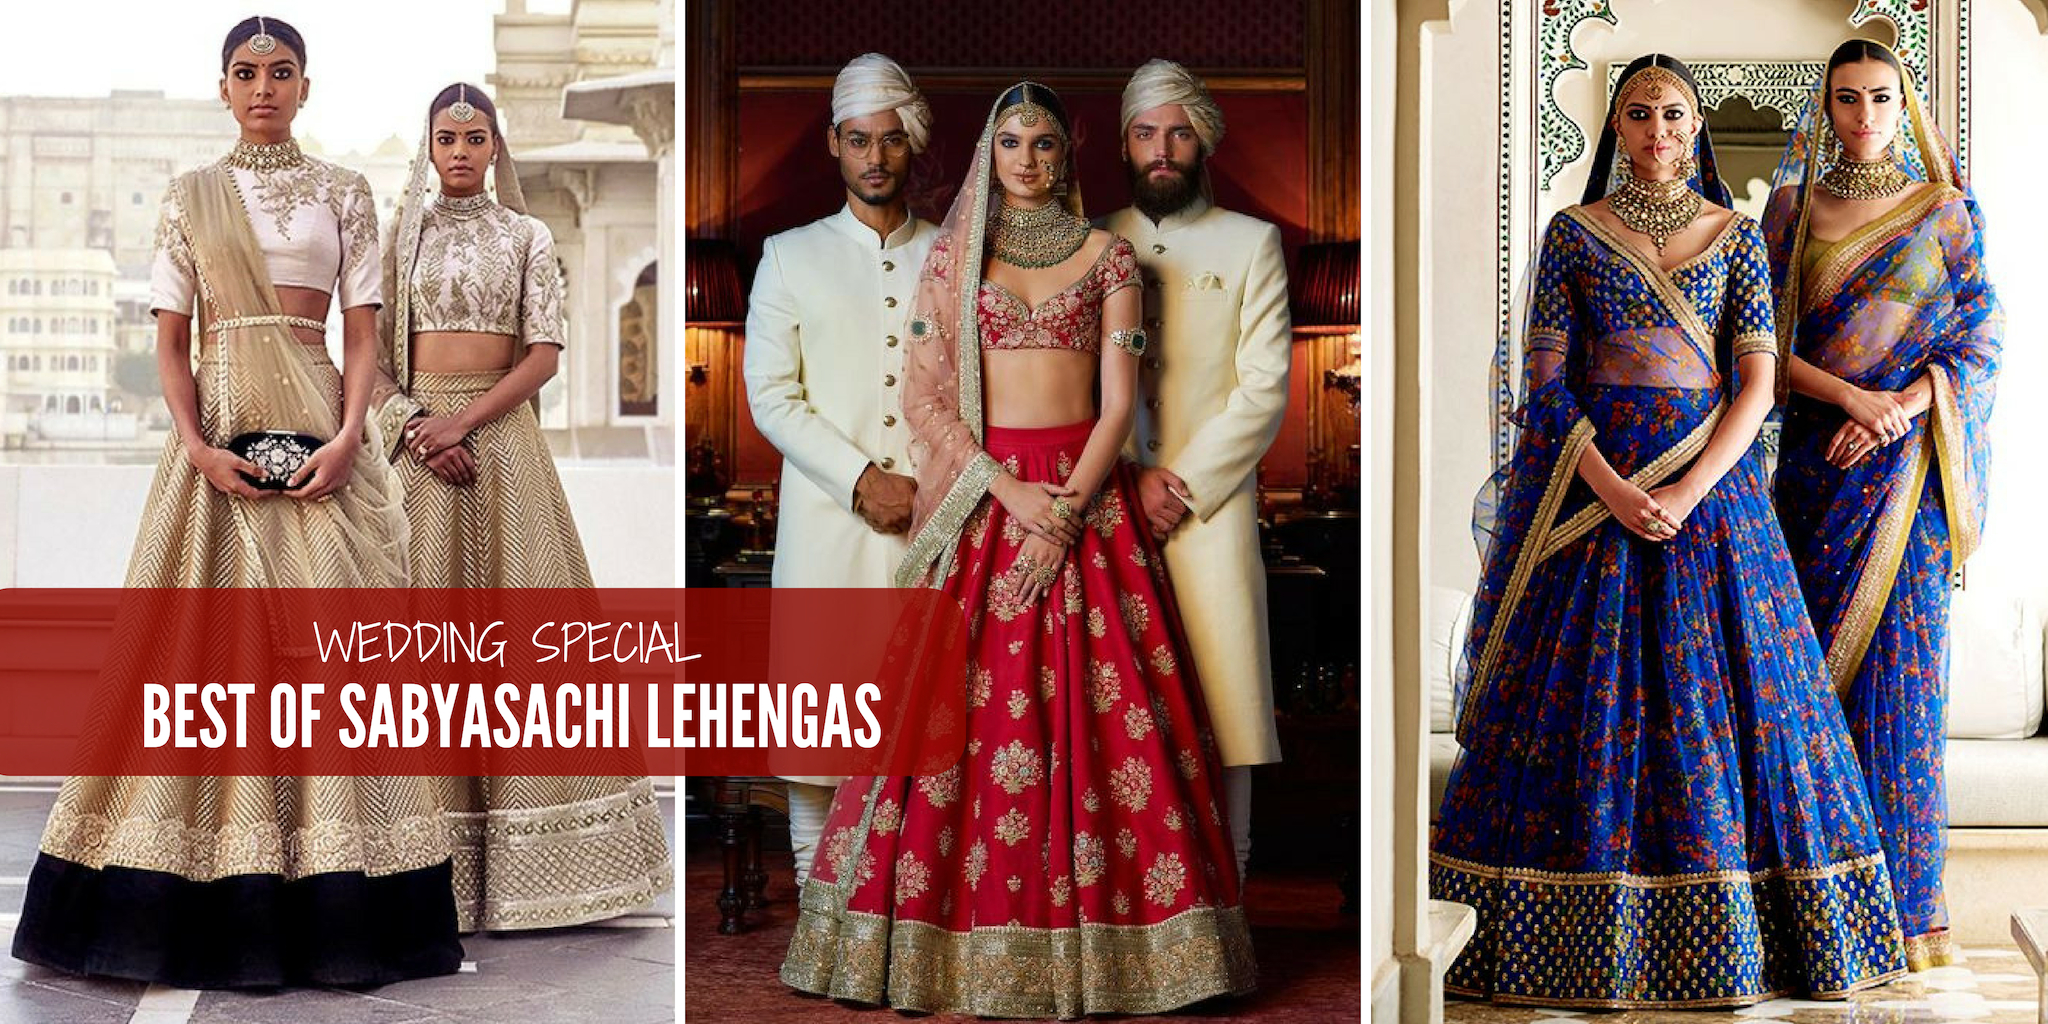 fee2cc2ce3 Best 20 Sabyasachi Lehengas For Wedding Wear Inspiration | magicpin blog